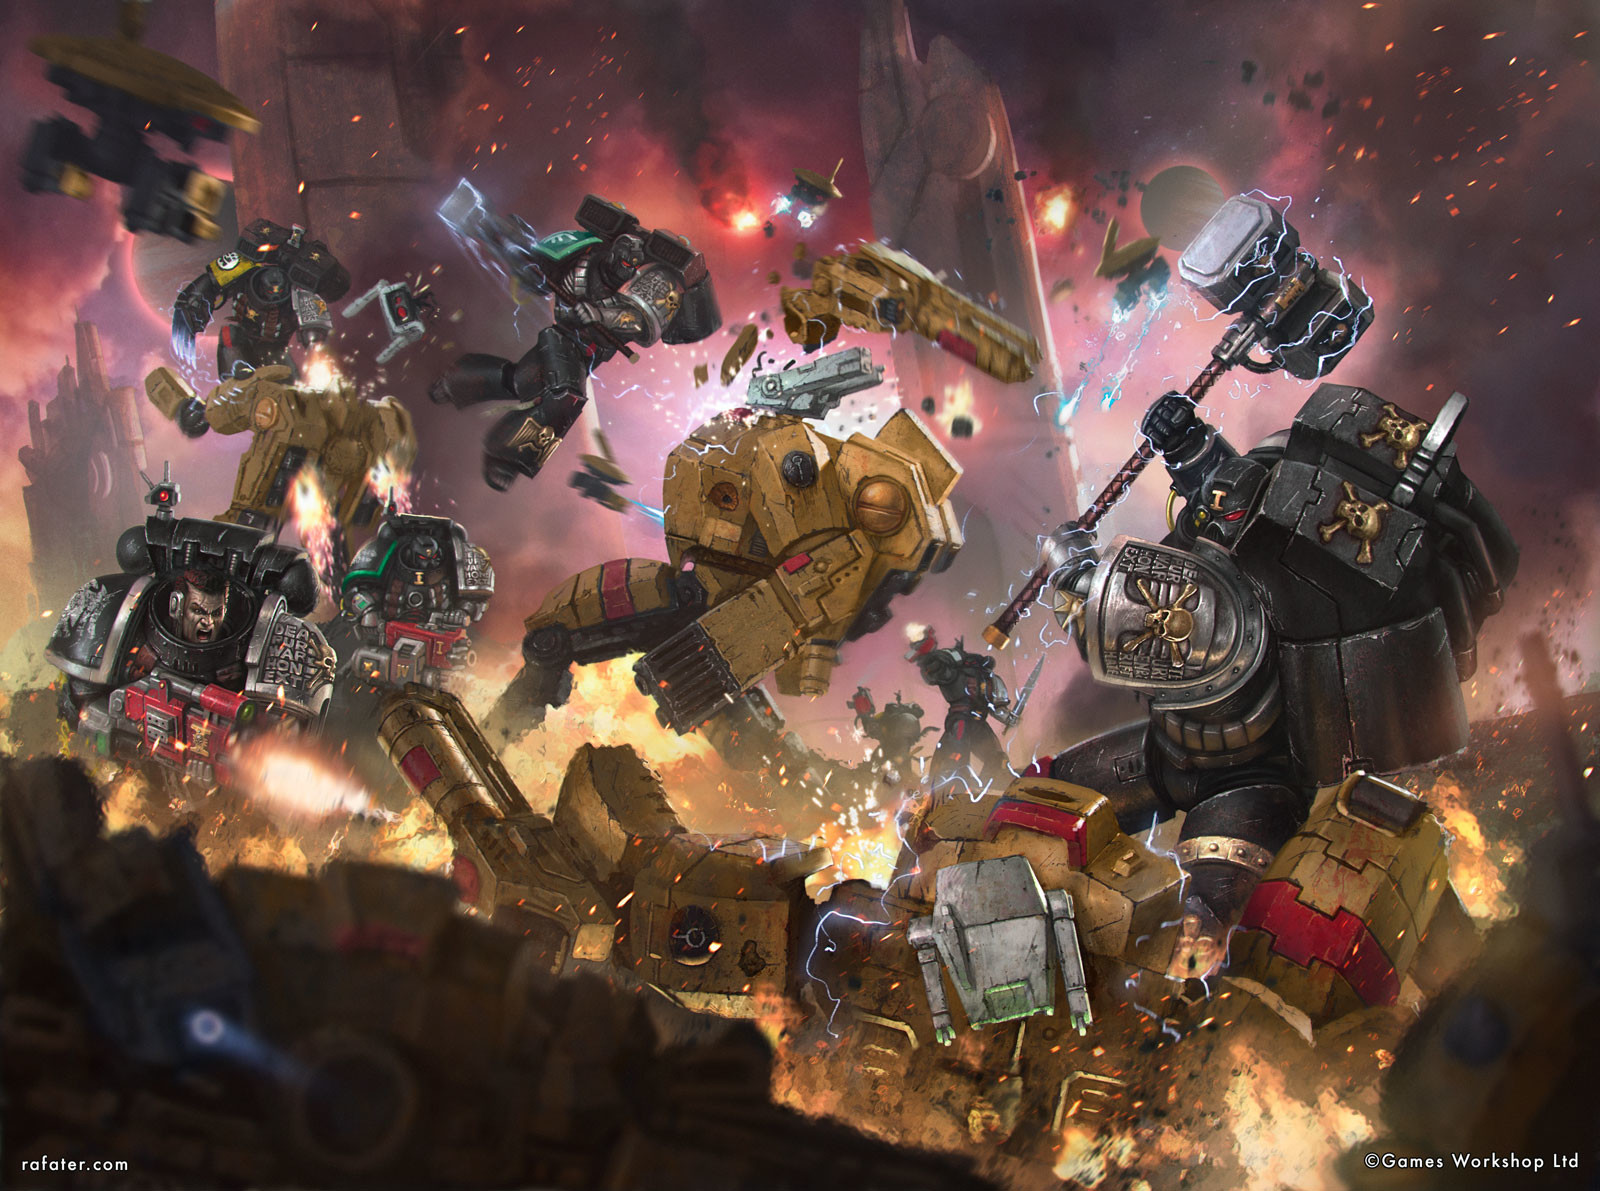 Deathwatch vs Tau battlesuits